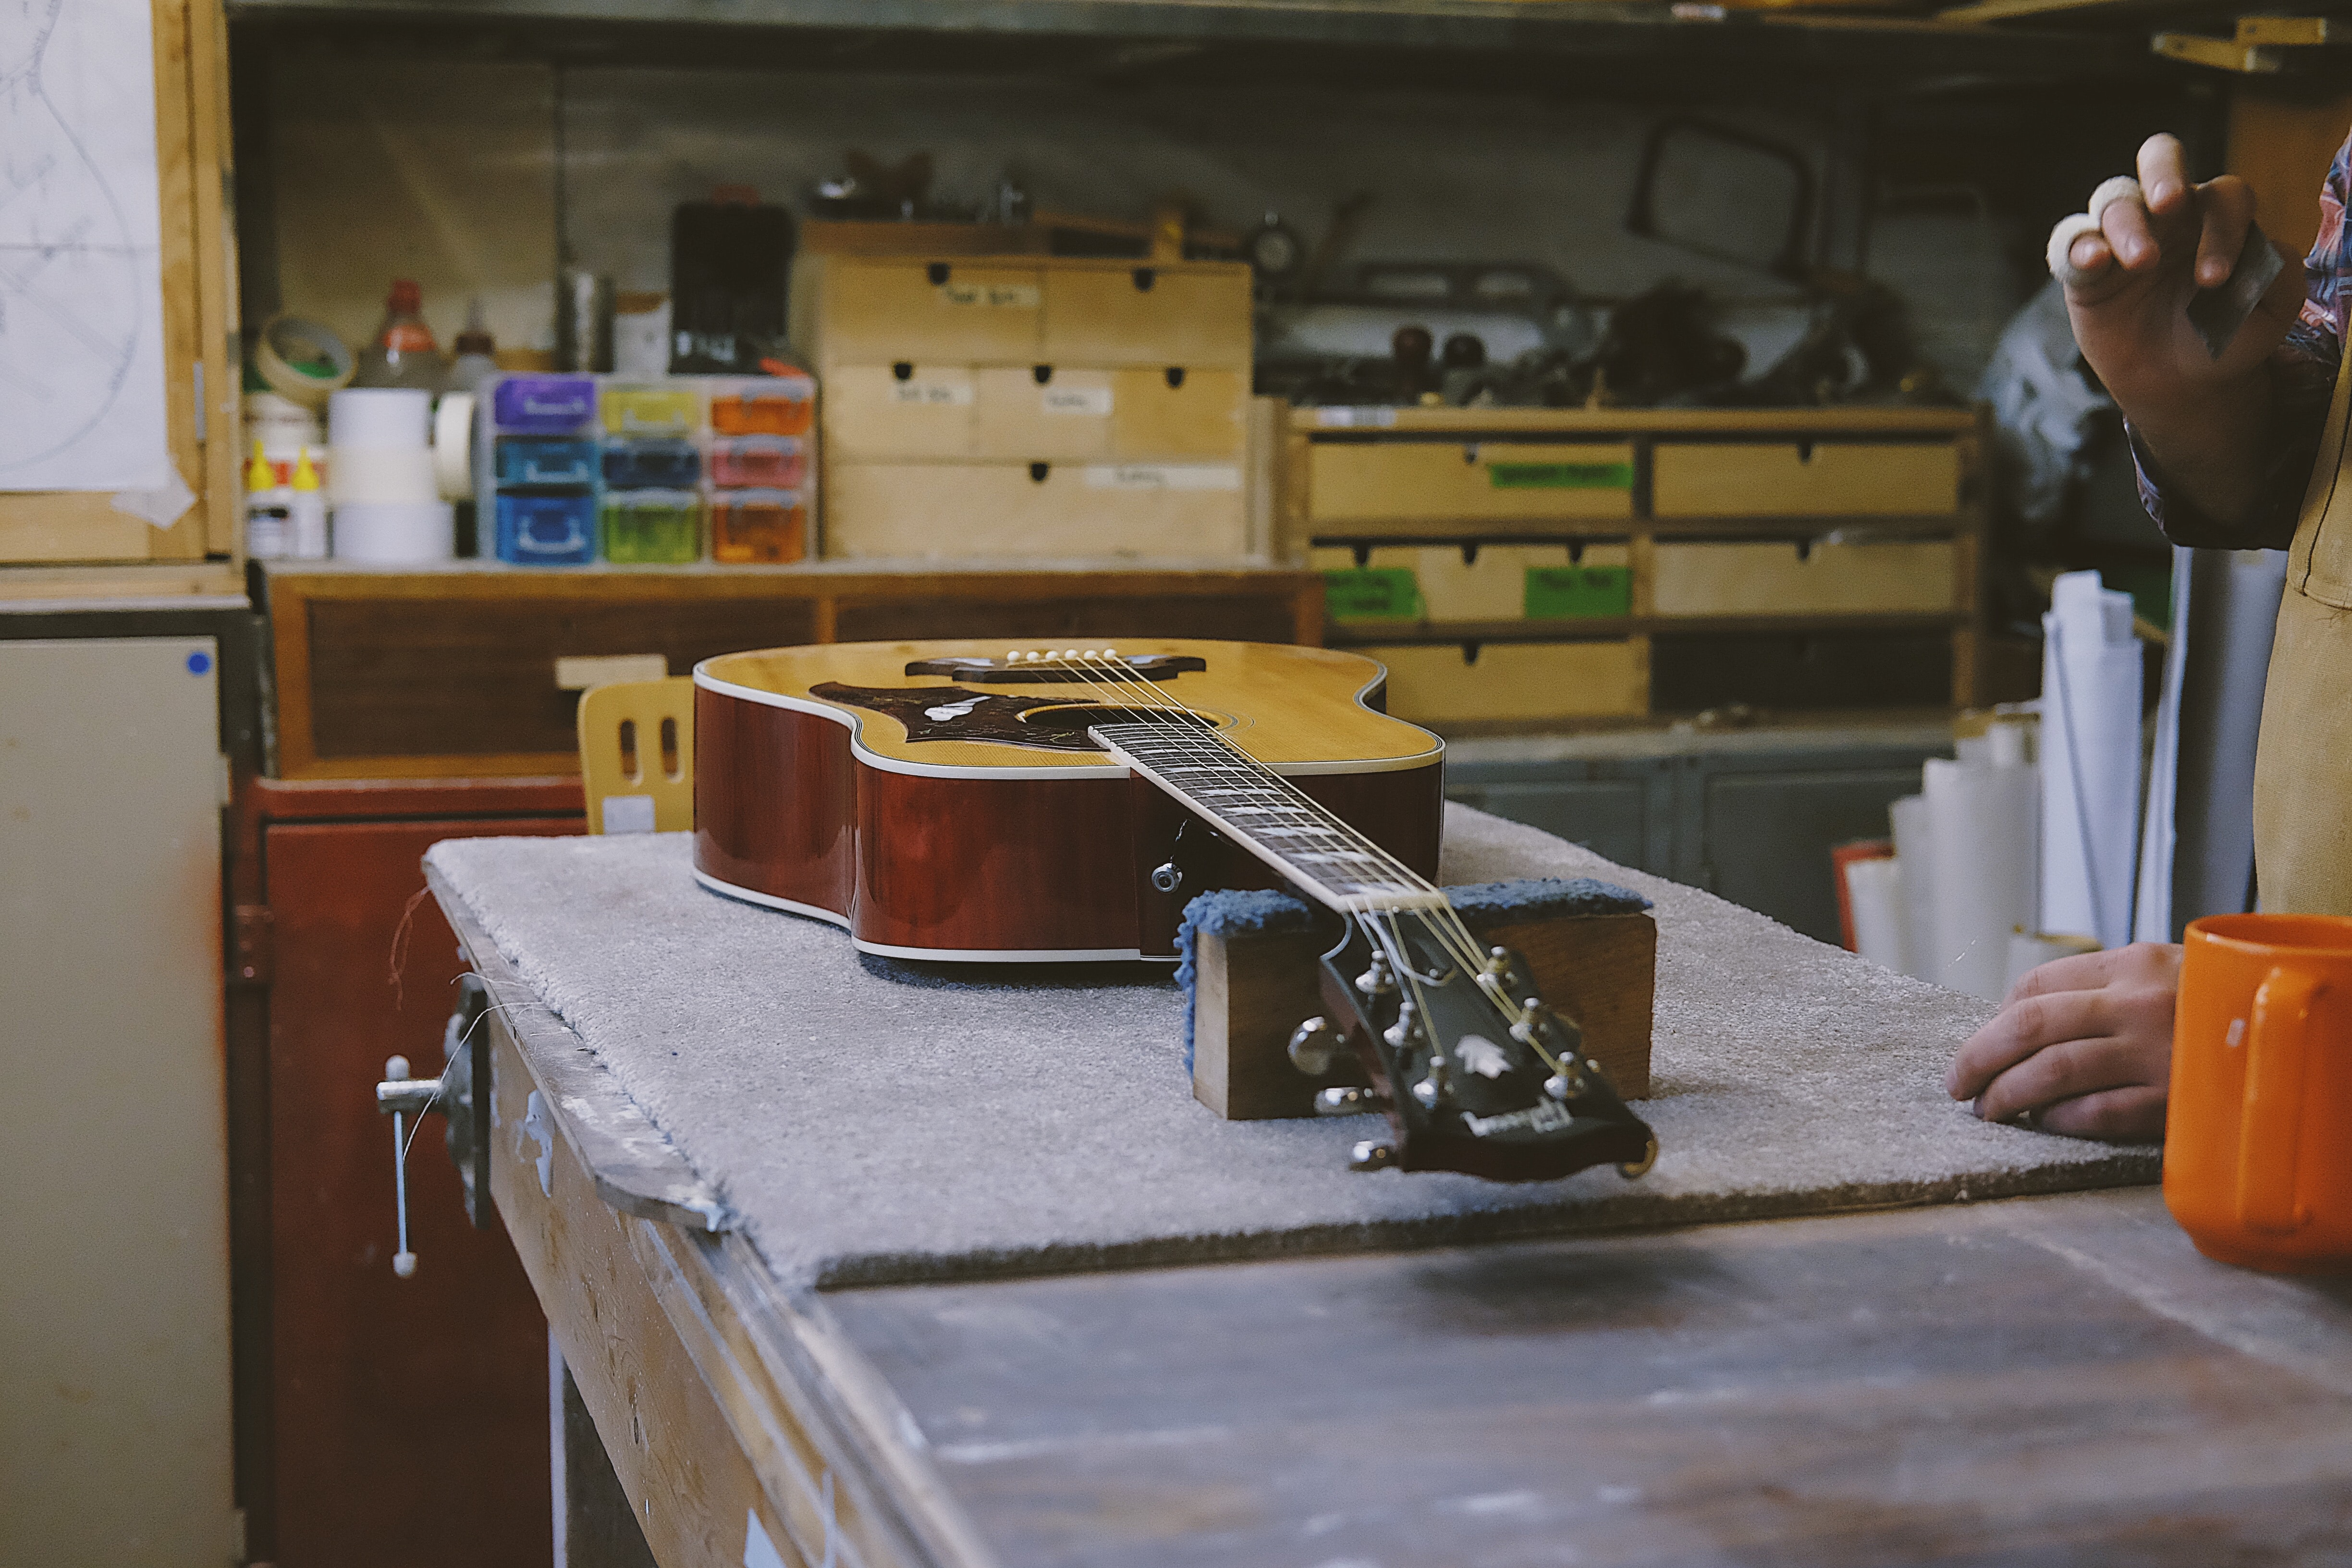 guitar resting on table near person in the kitchen